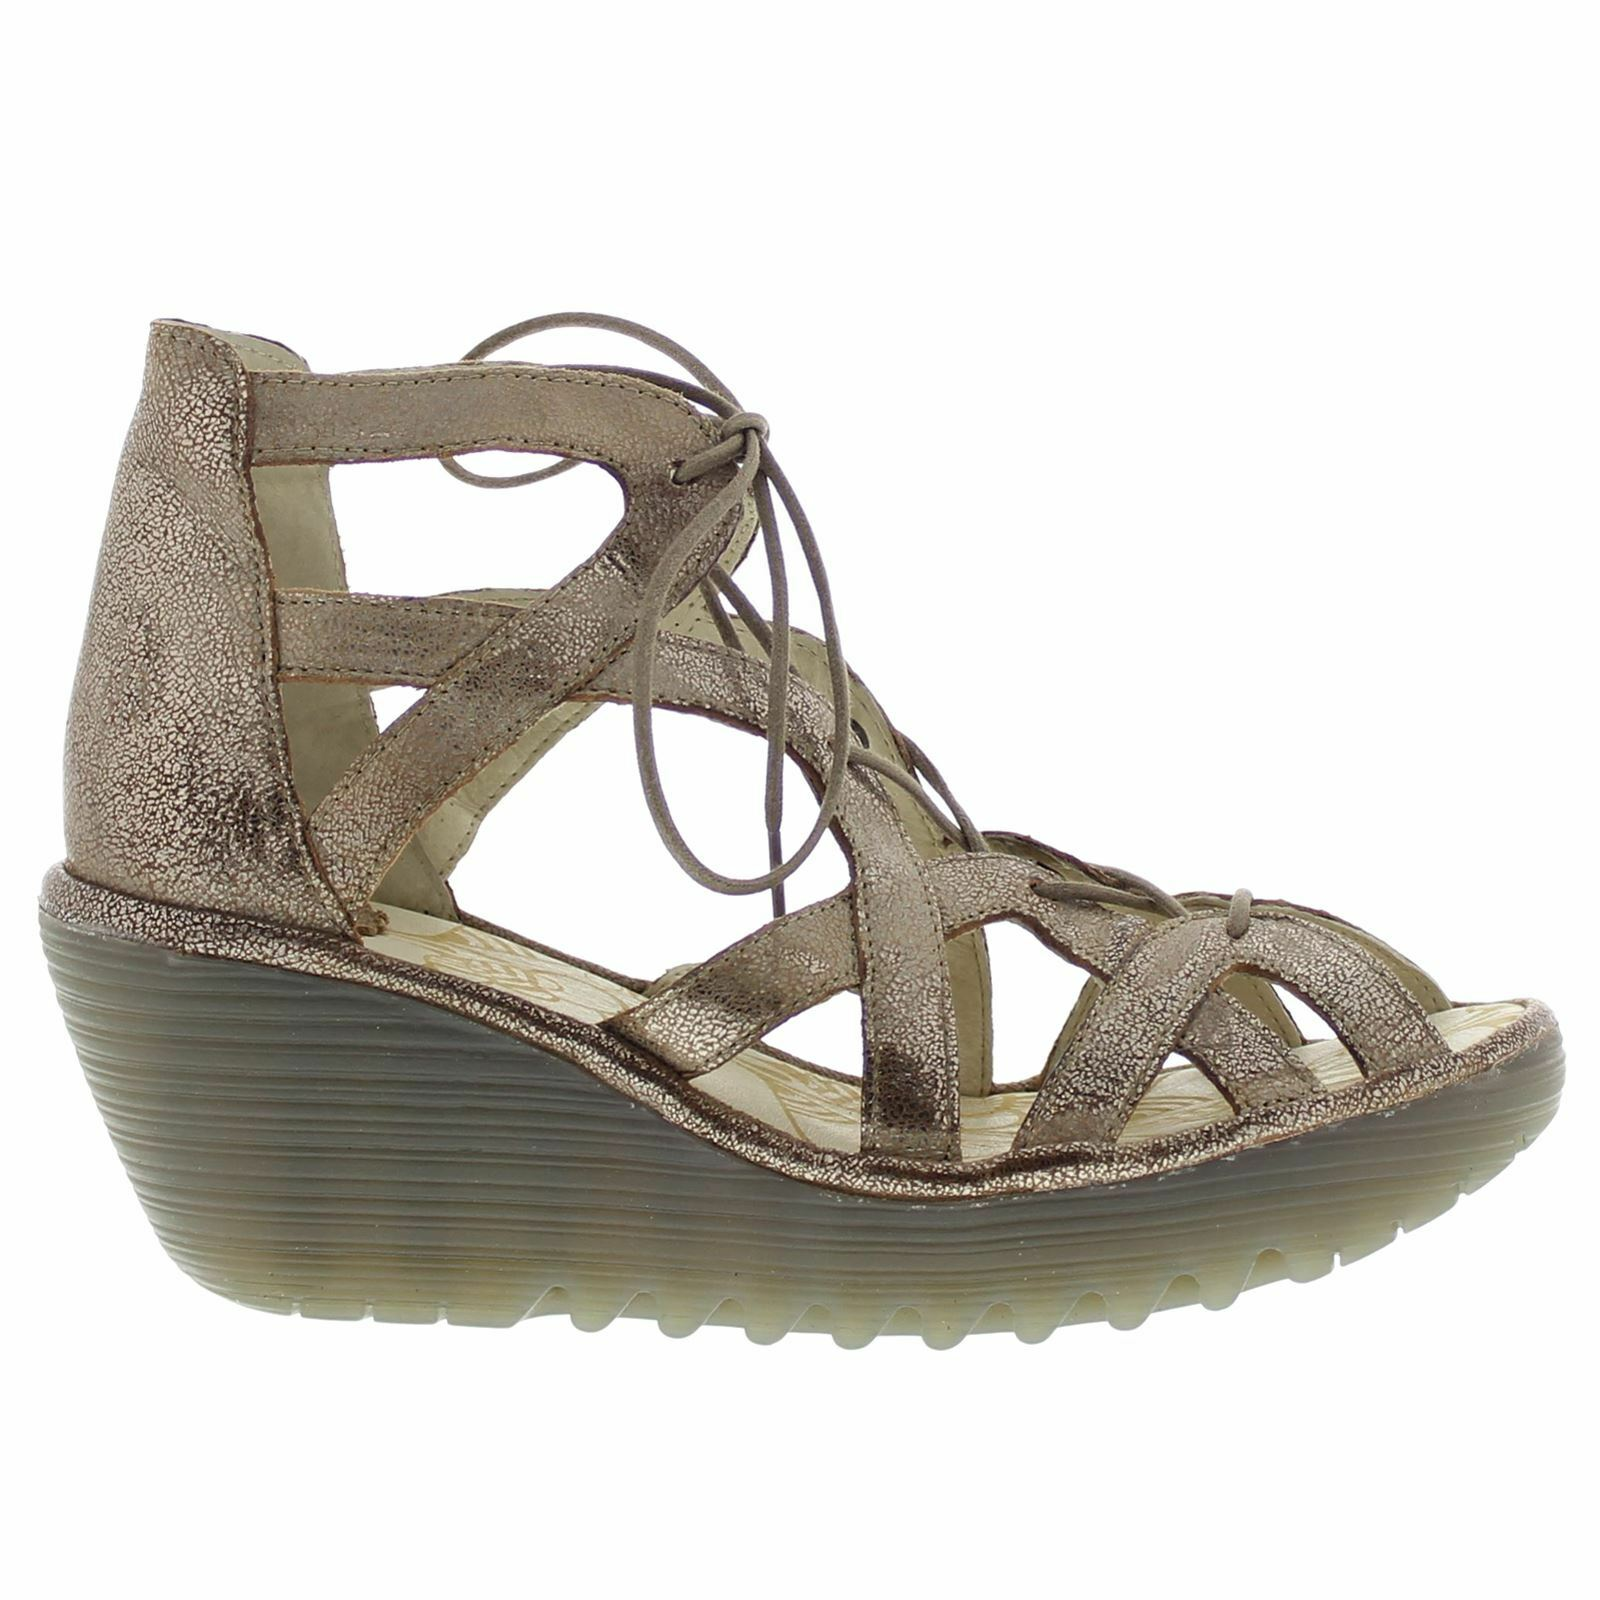 Fly London YELI719FLY YELI719FLY London Wedge Gold Damenschuhe Sandales b80527